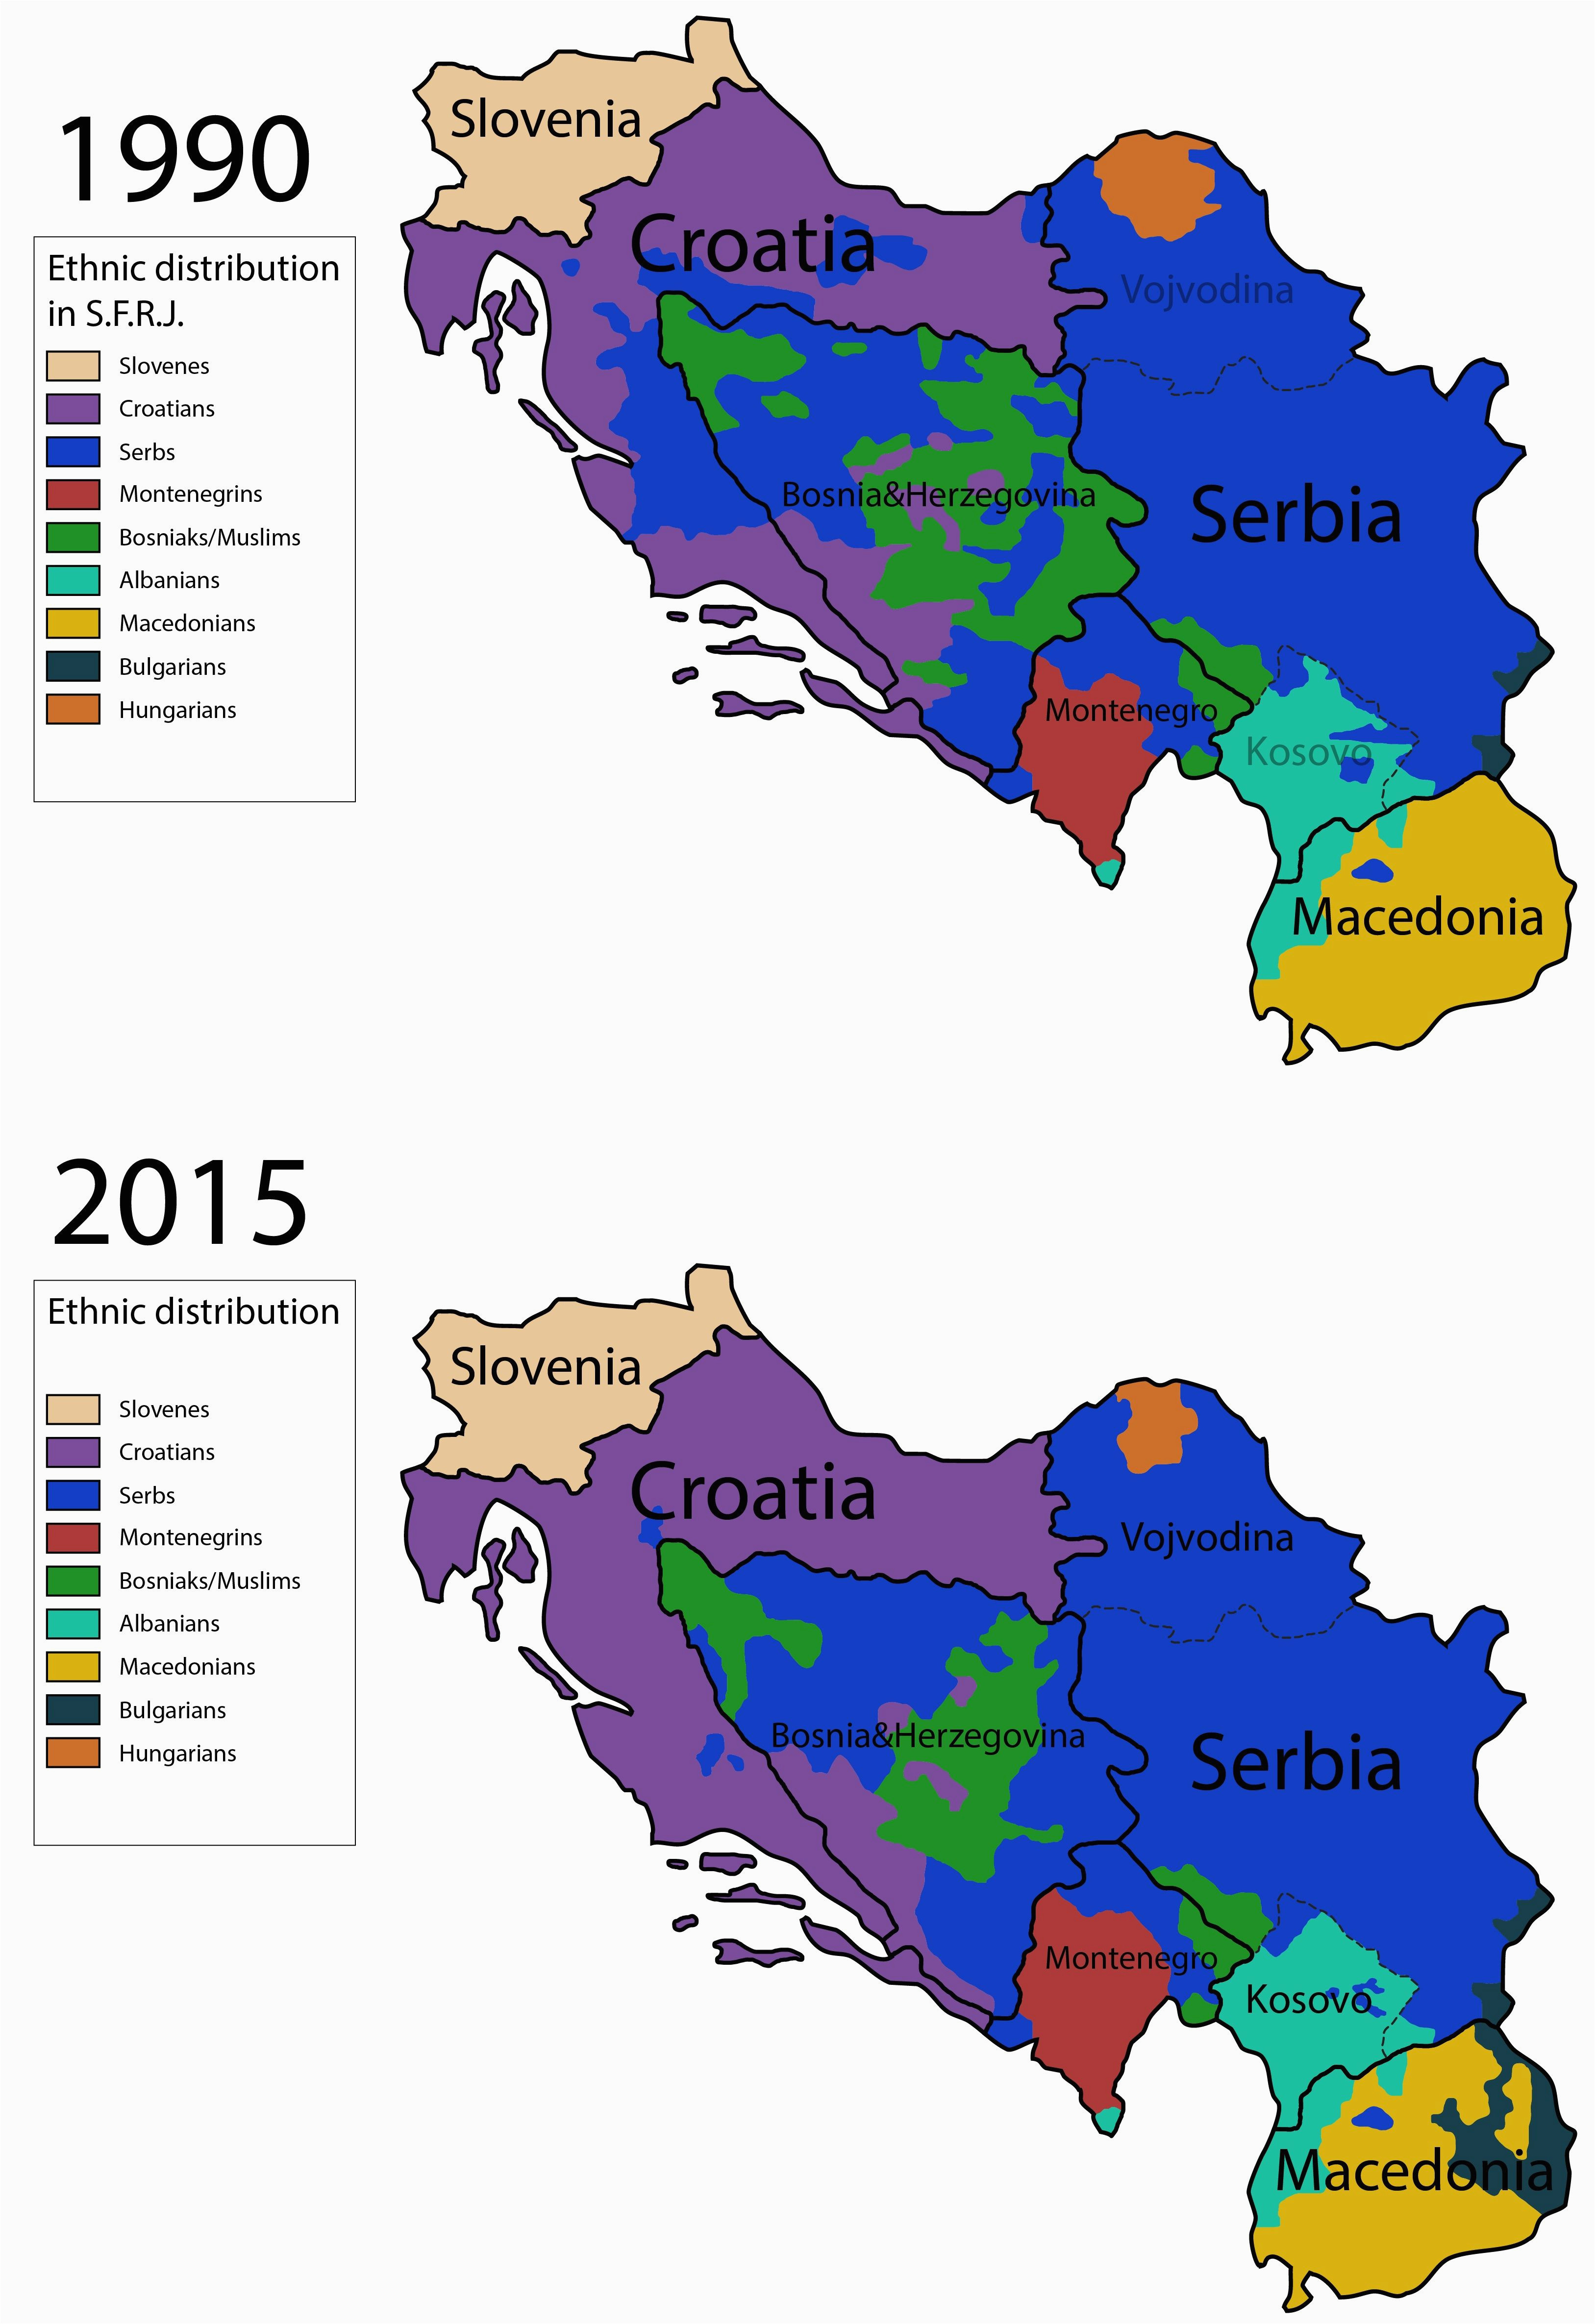 ethnic map of yugoslavia before and after the war 1990